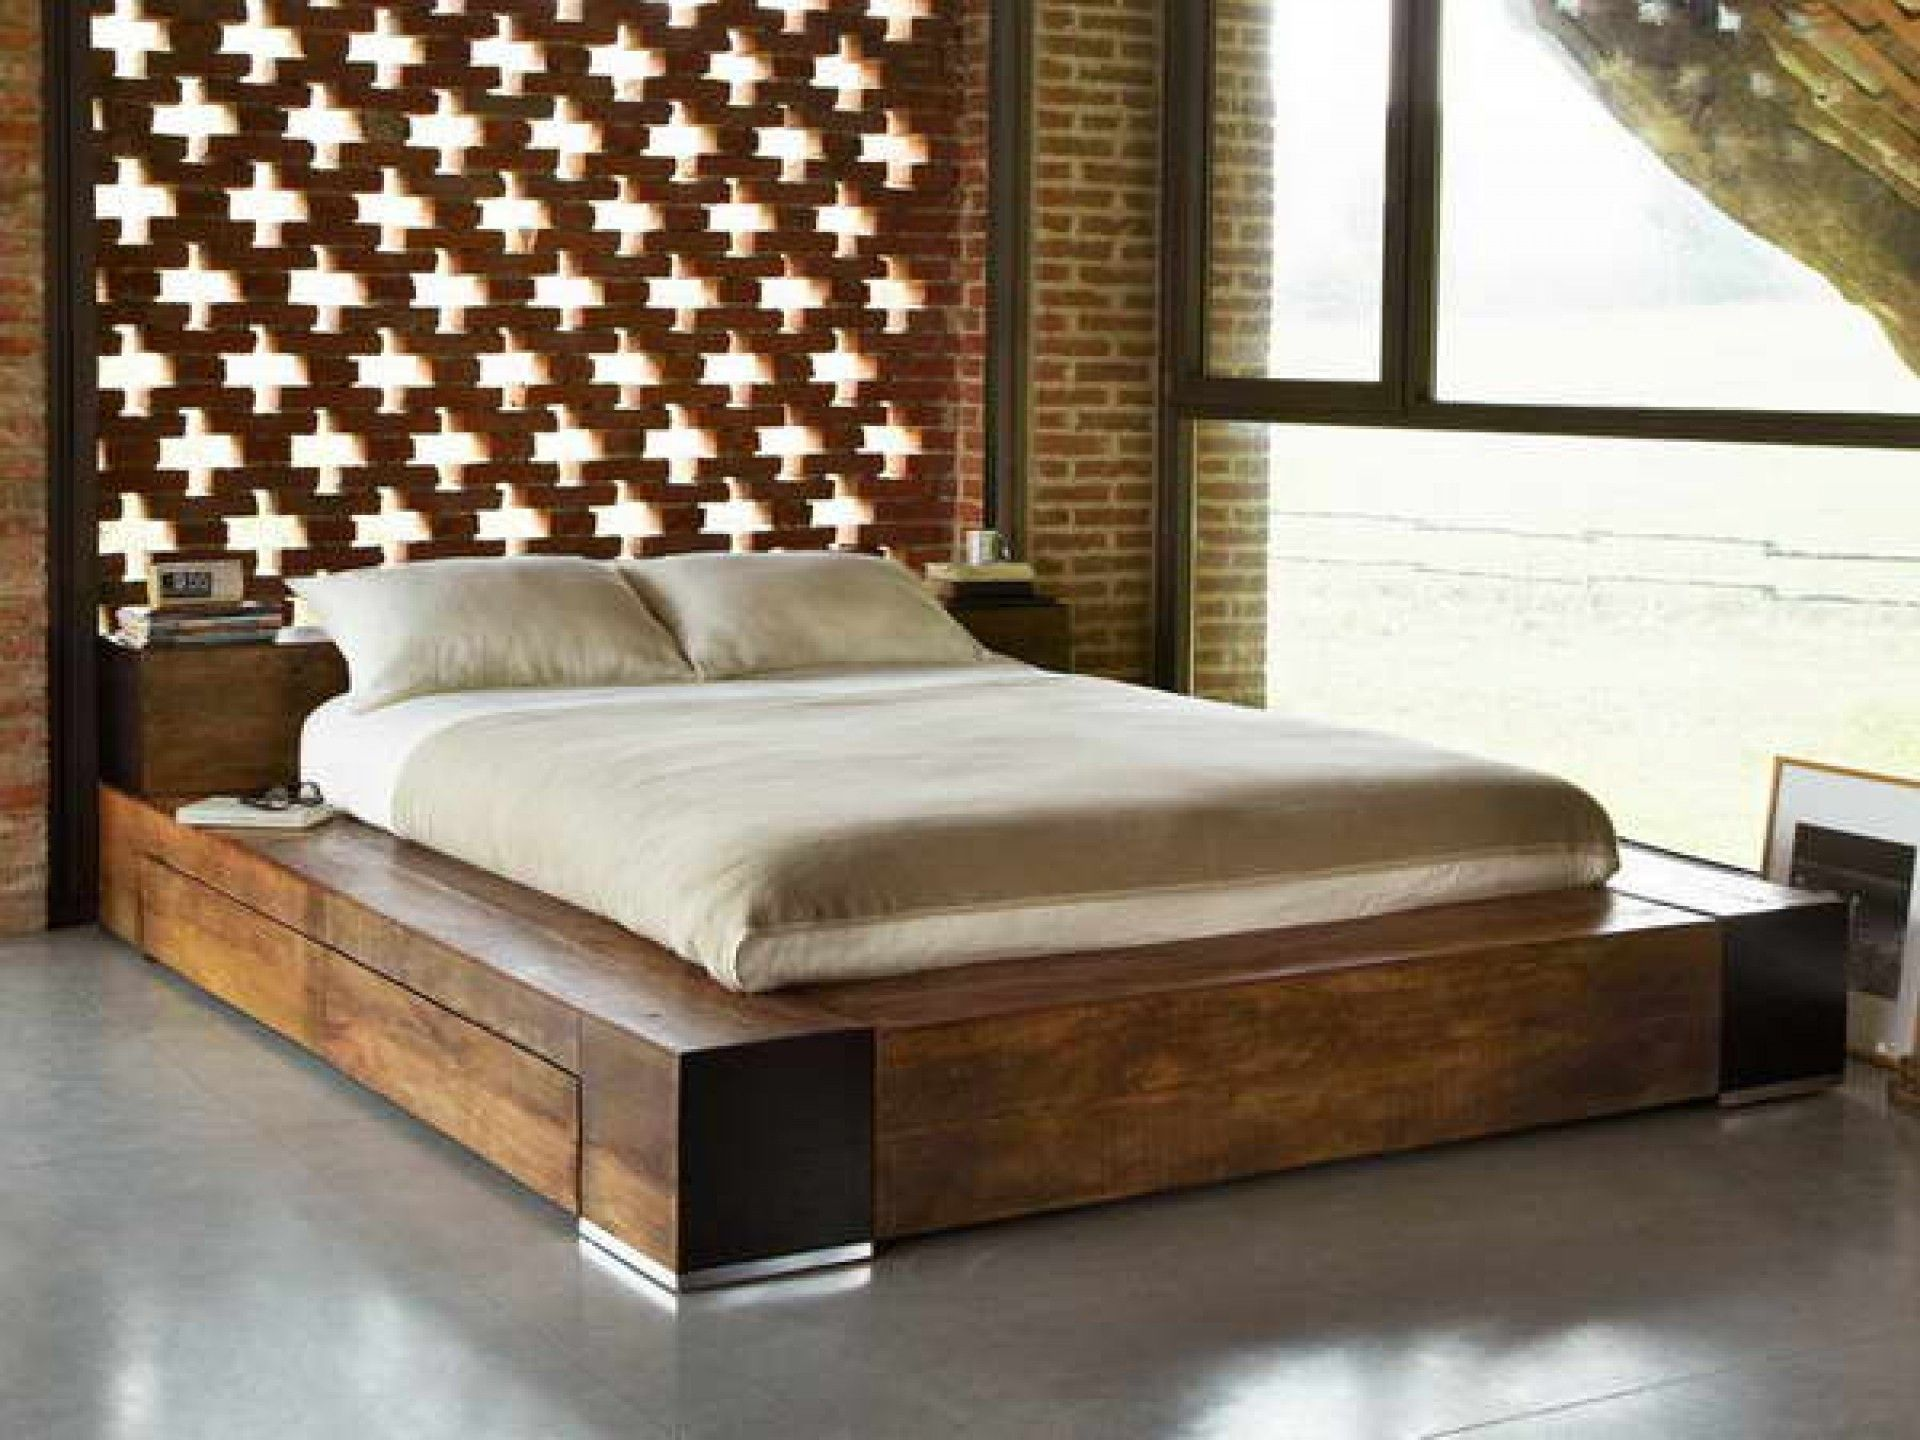 Wooden bed frame ideas - Ristic Wooden Bed Frame Drawers Google Search